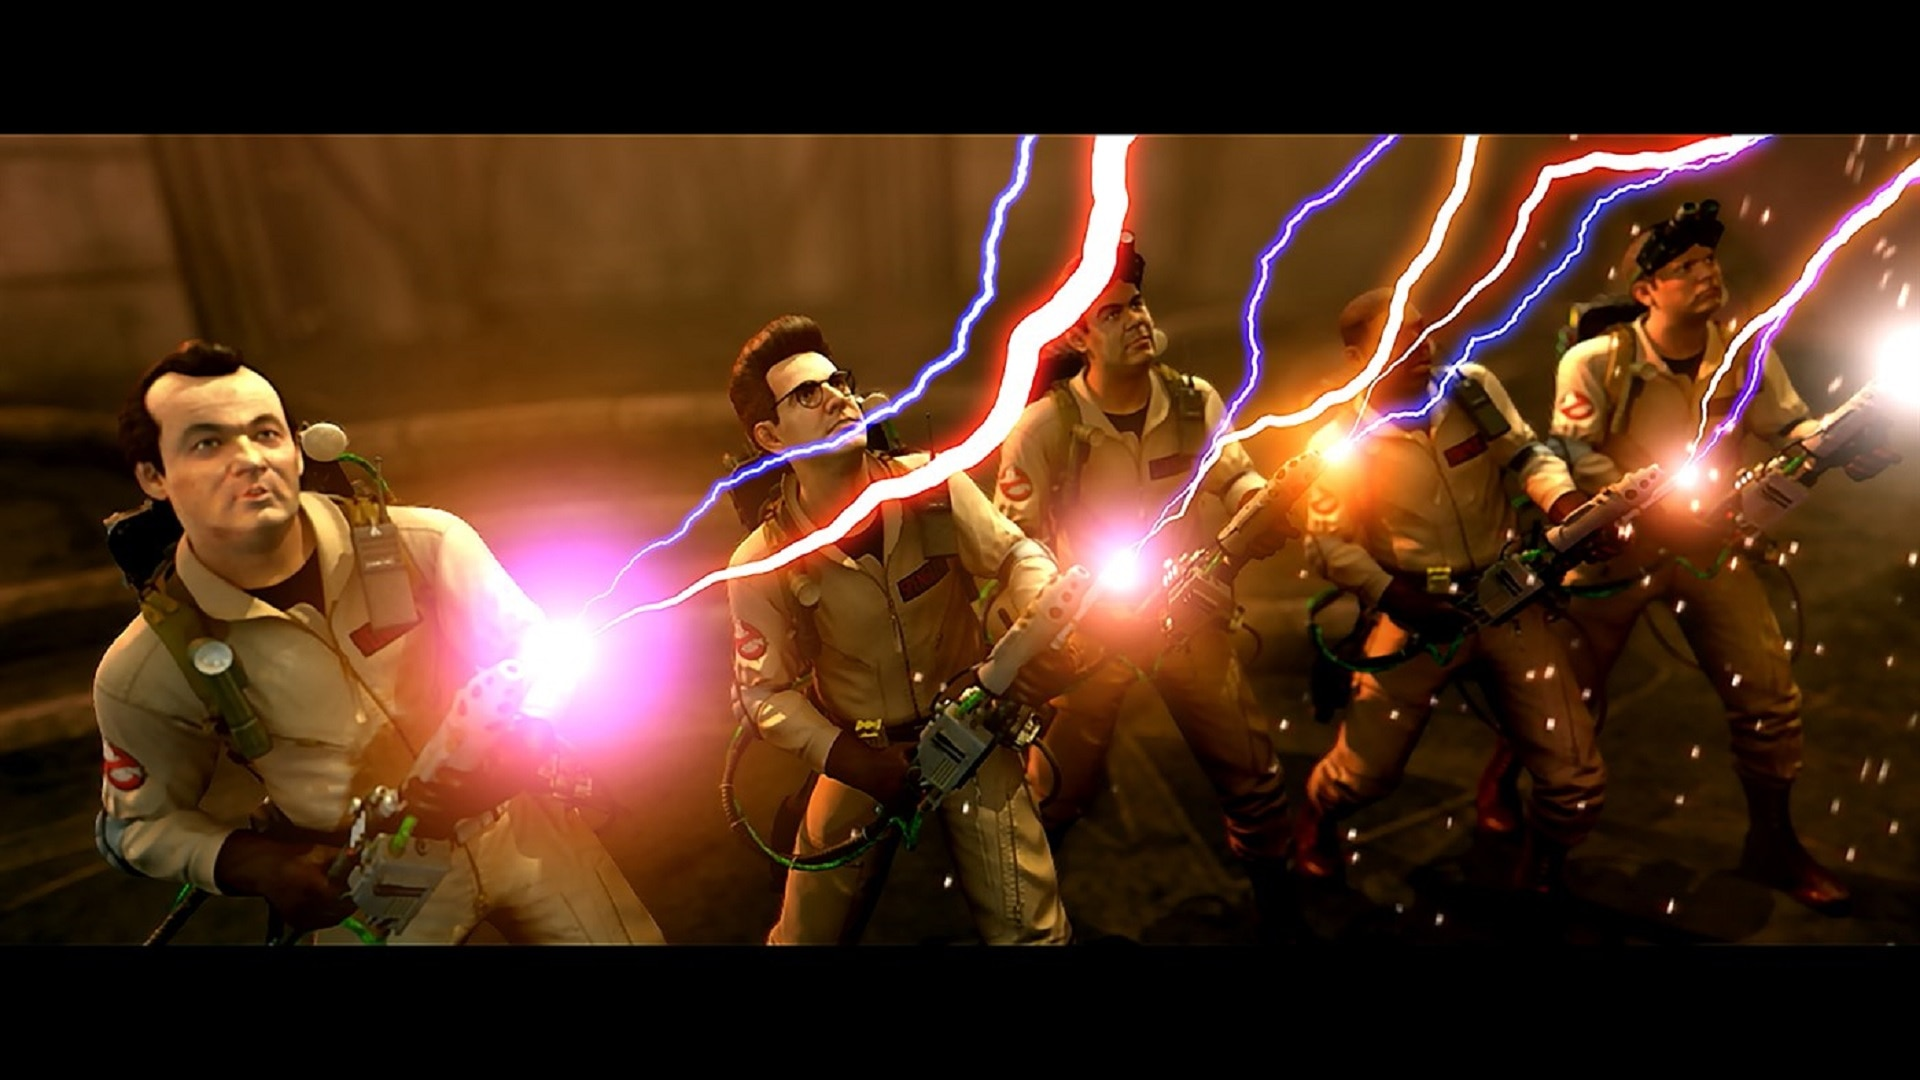 Ghostbusters Video Game - five ghostsbusters firing proton beams